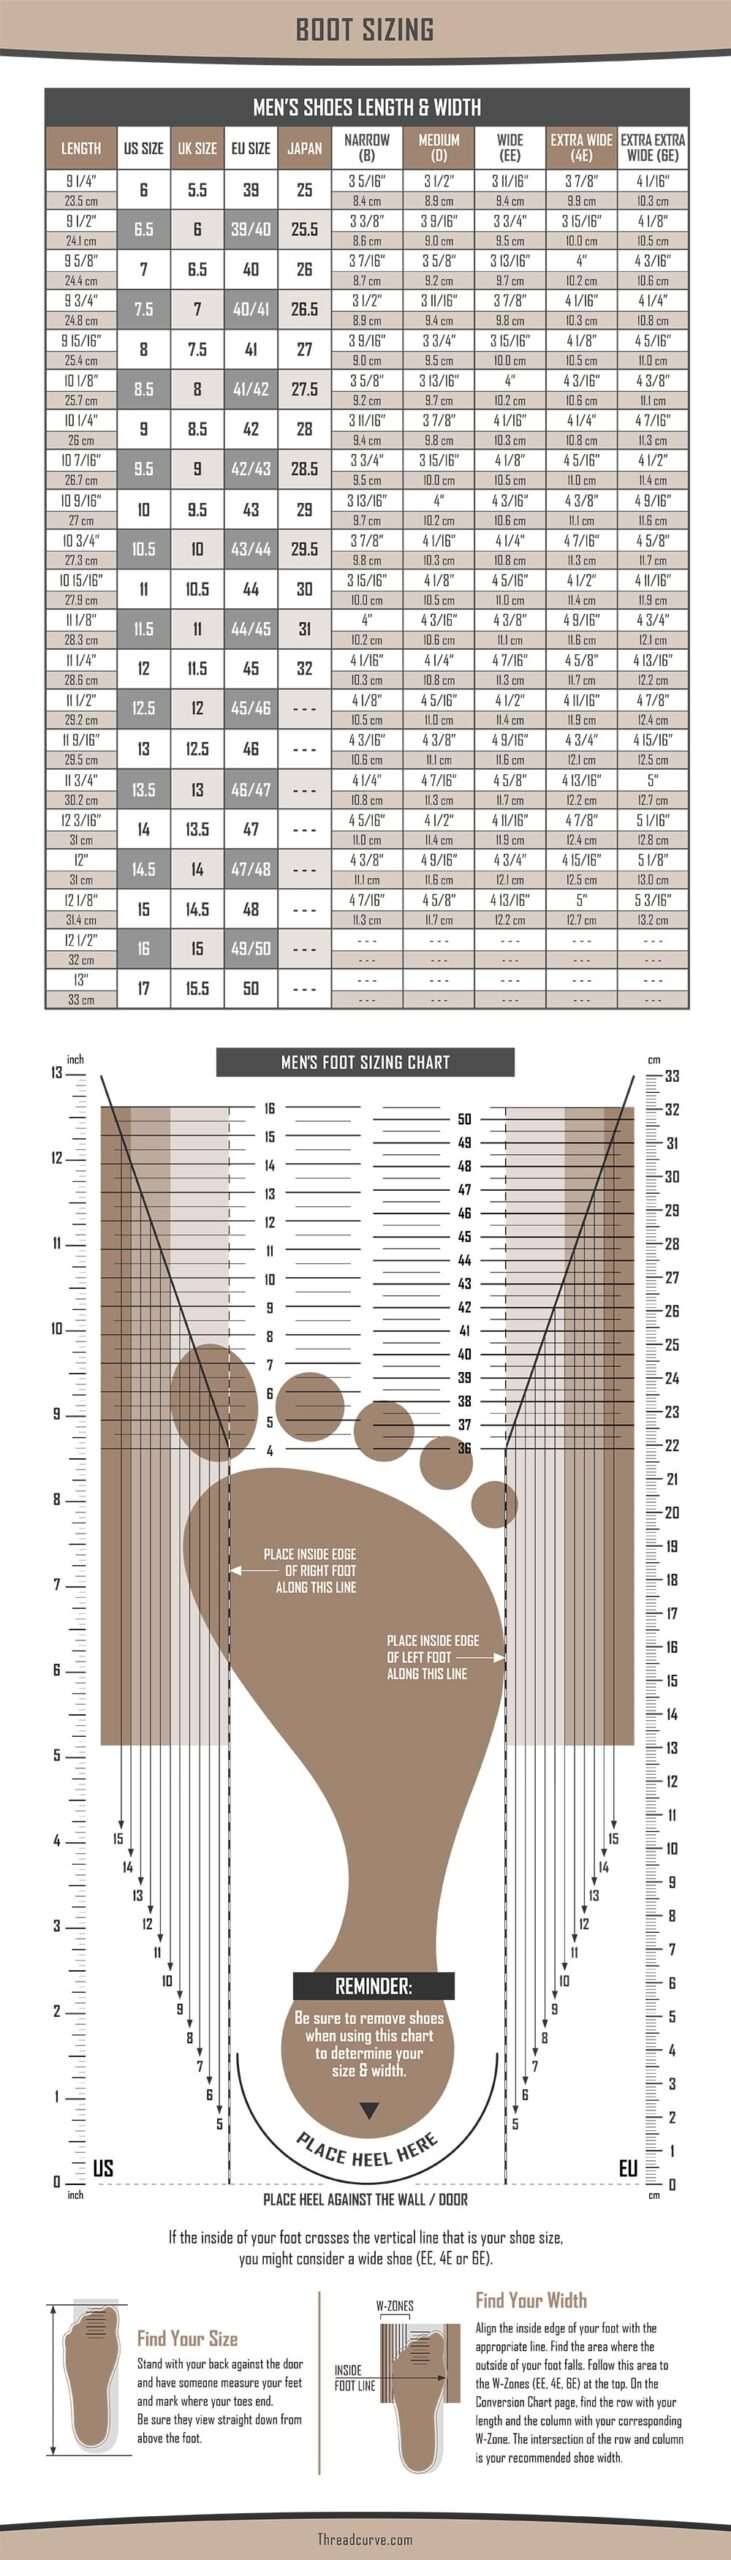 Men's boot size chart with measuring guide